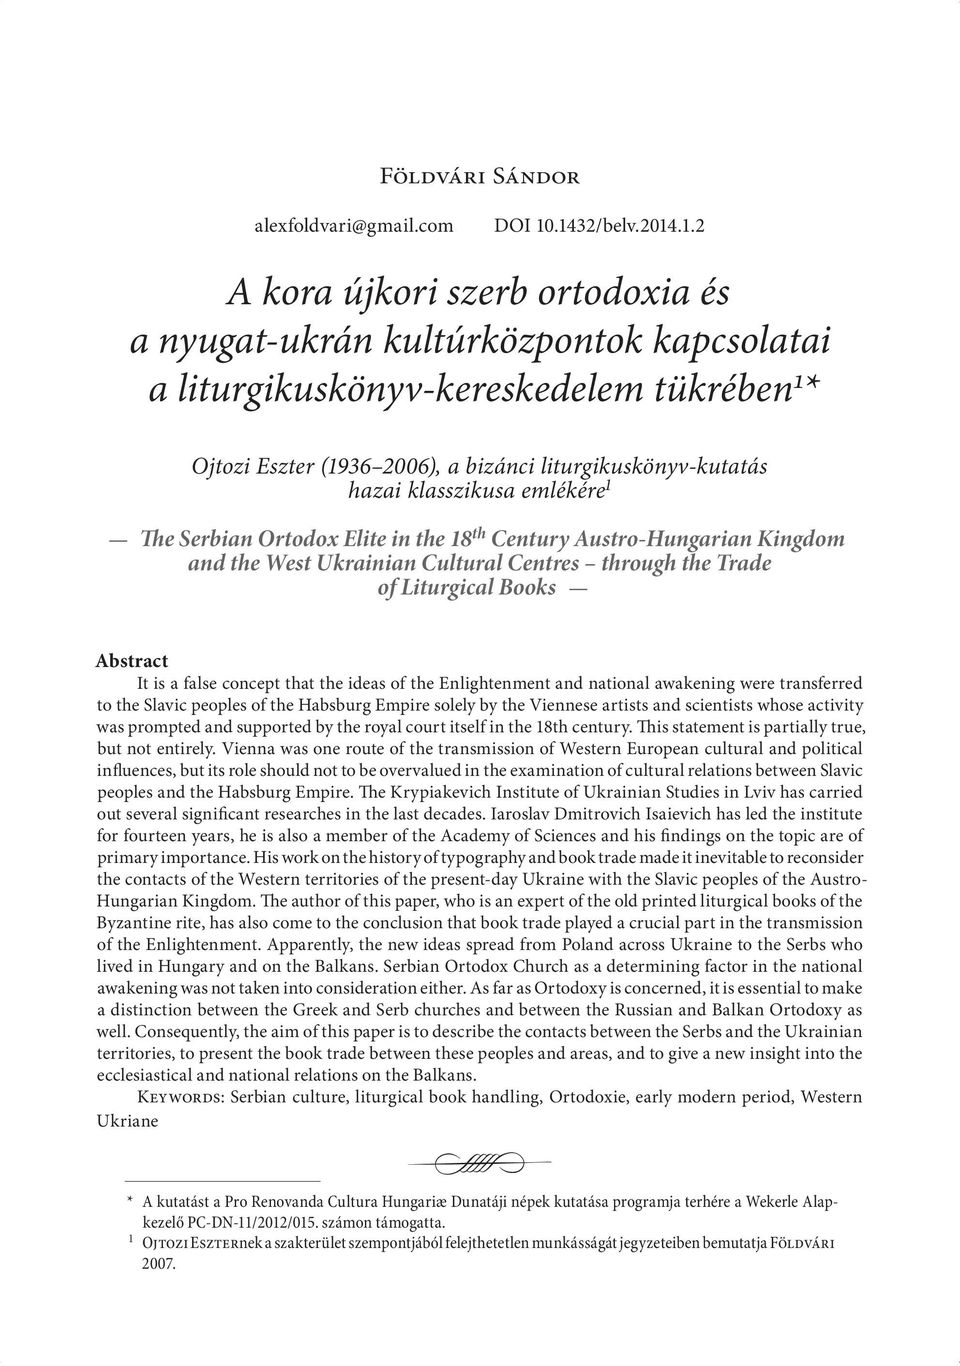 liturgikuskönyv-kutatás hazai klasszikusa emlékére 1 The Serbian Ortodox Elite in the 18 th Century Austro-Hungarian Kingdom and the West Ukrainian Cultural Centres through the Trade of Liturgical